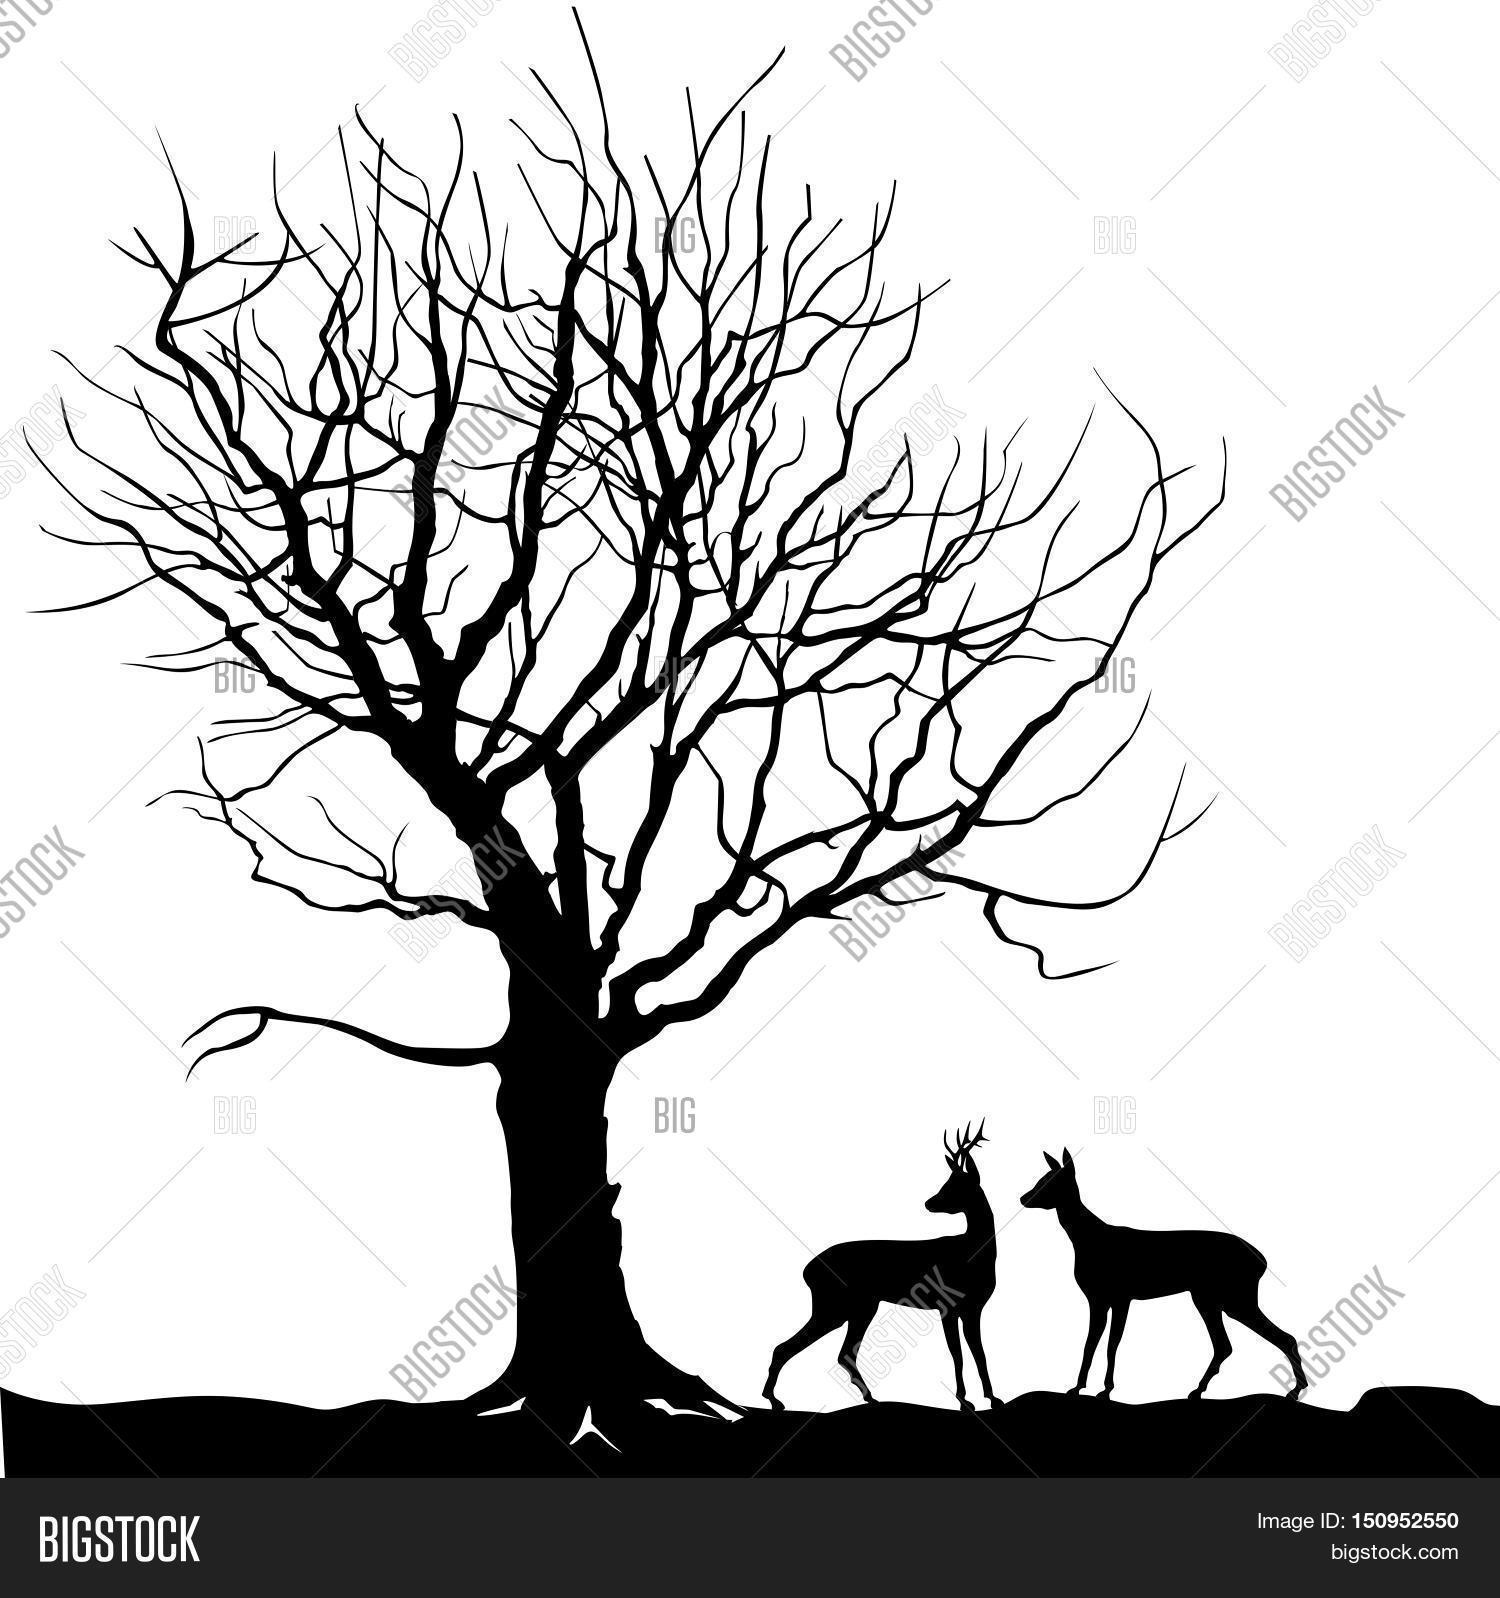 Animal Over Tree Forest Landscape Vector & Photo | Bigstock